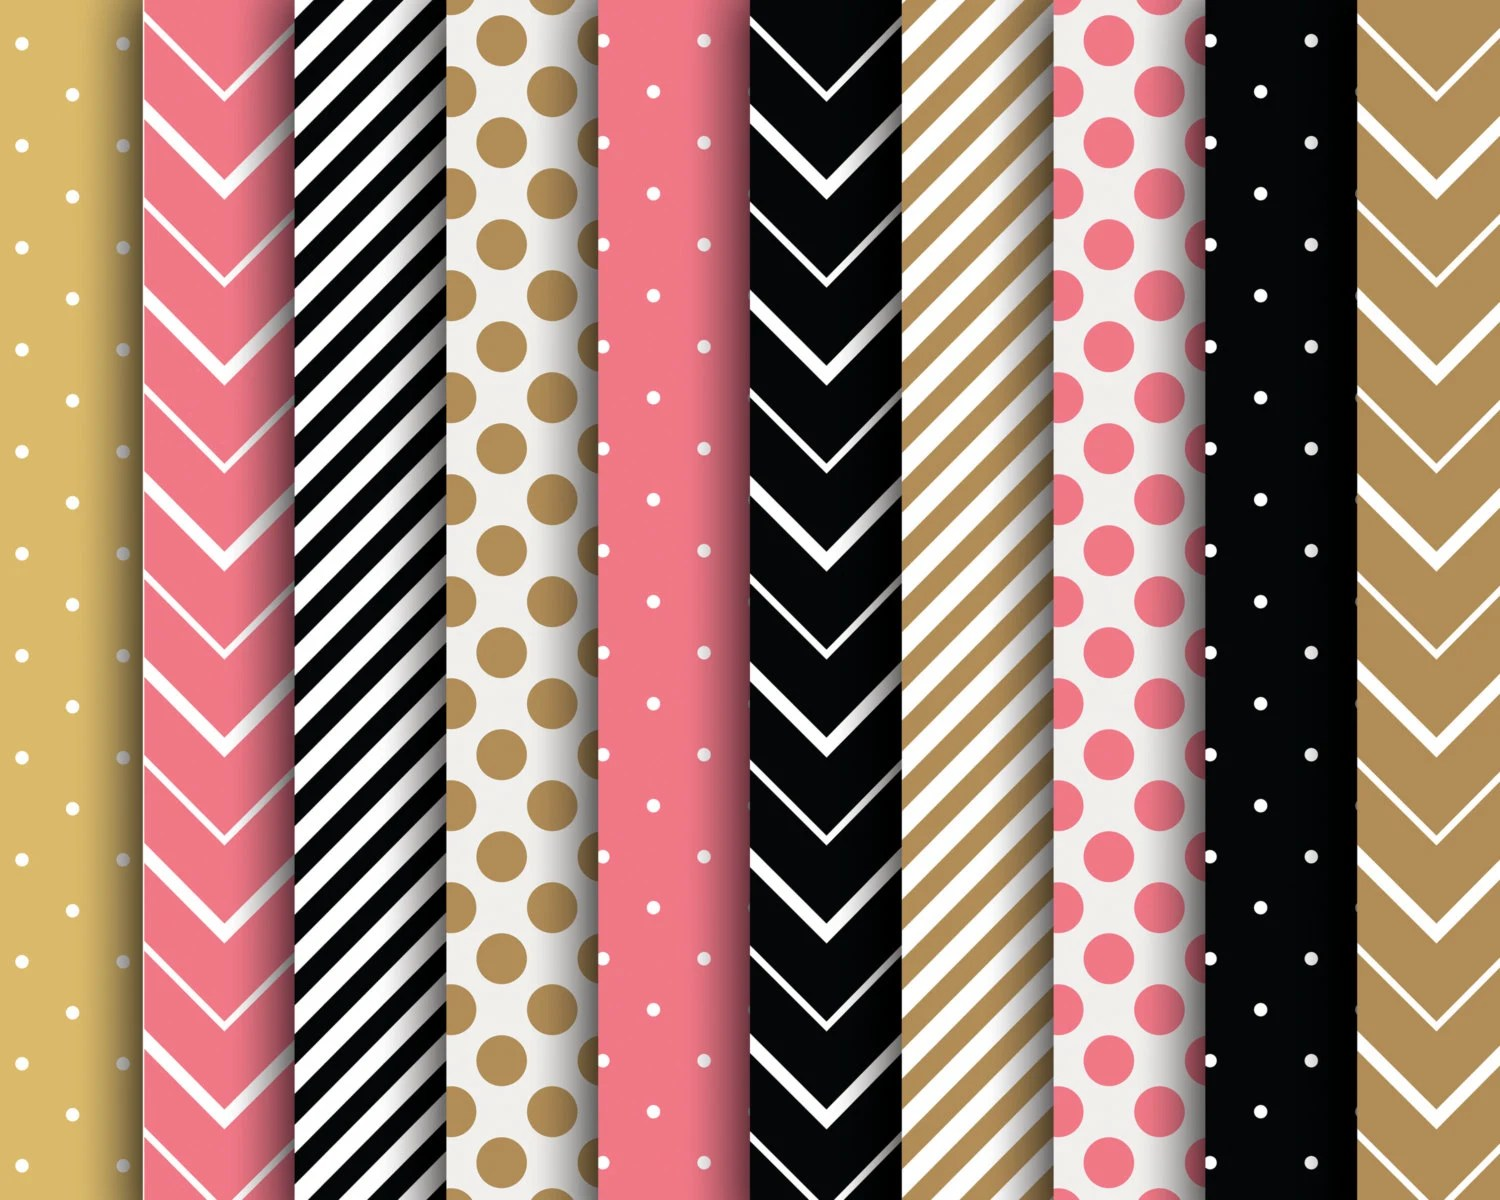 60 OFF SALE Digital Papers Scrapbooking Stripes Polka Dots Chevron - stripes with polka dots